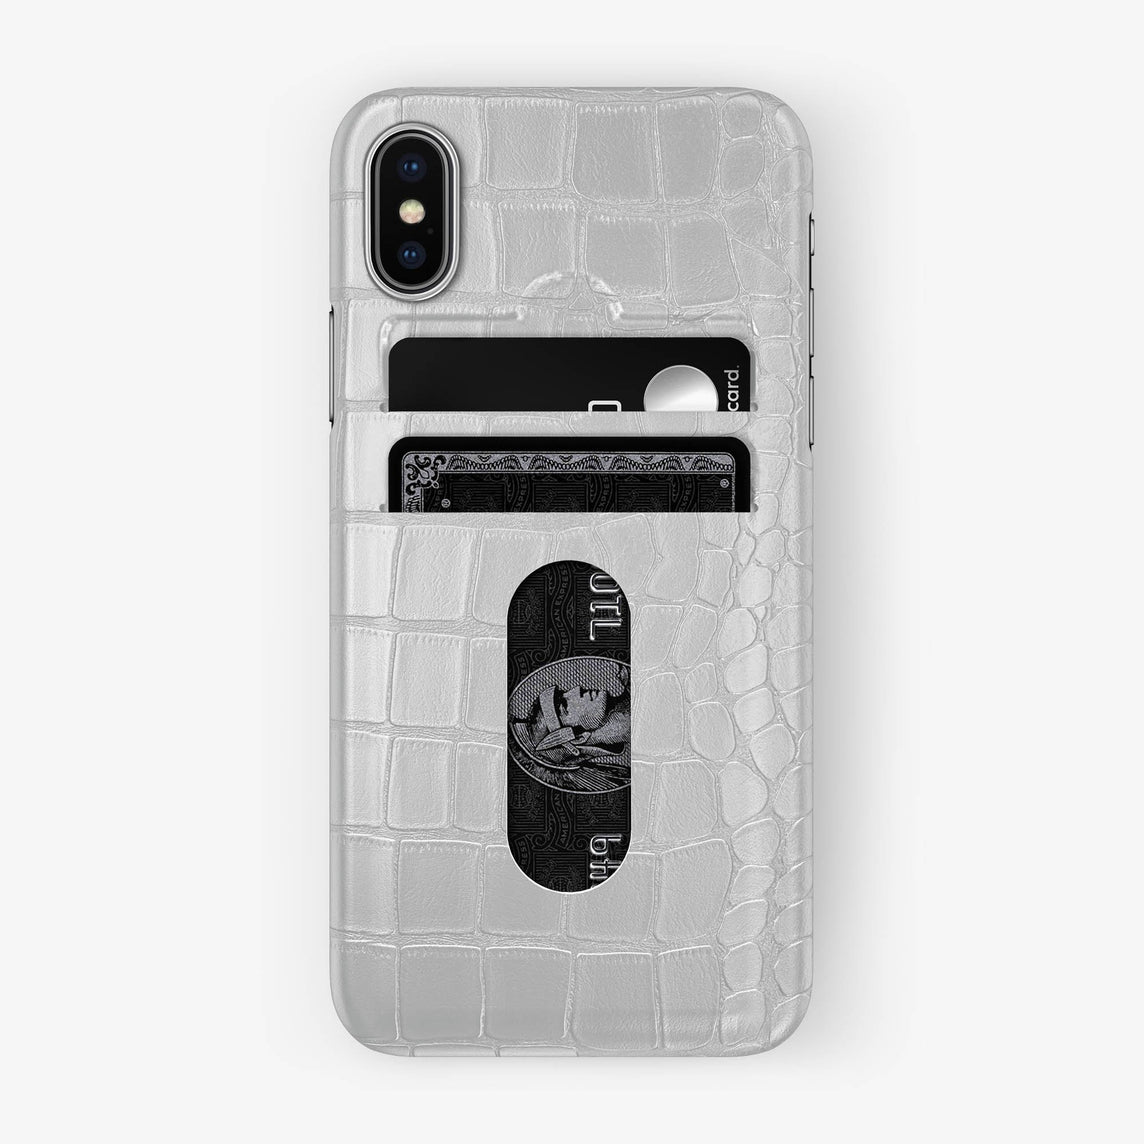 Alligator Card Holder Case iPhone X/Xs | White - Stainless Steel without-personalization